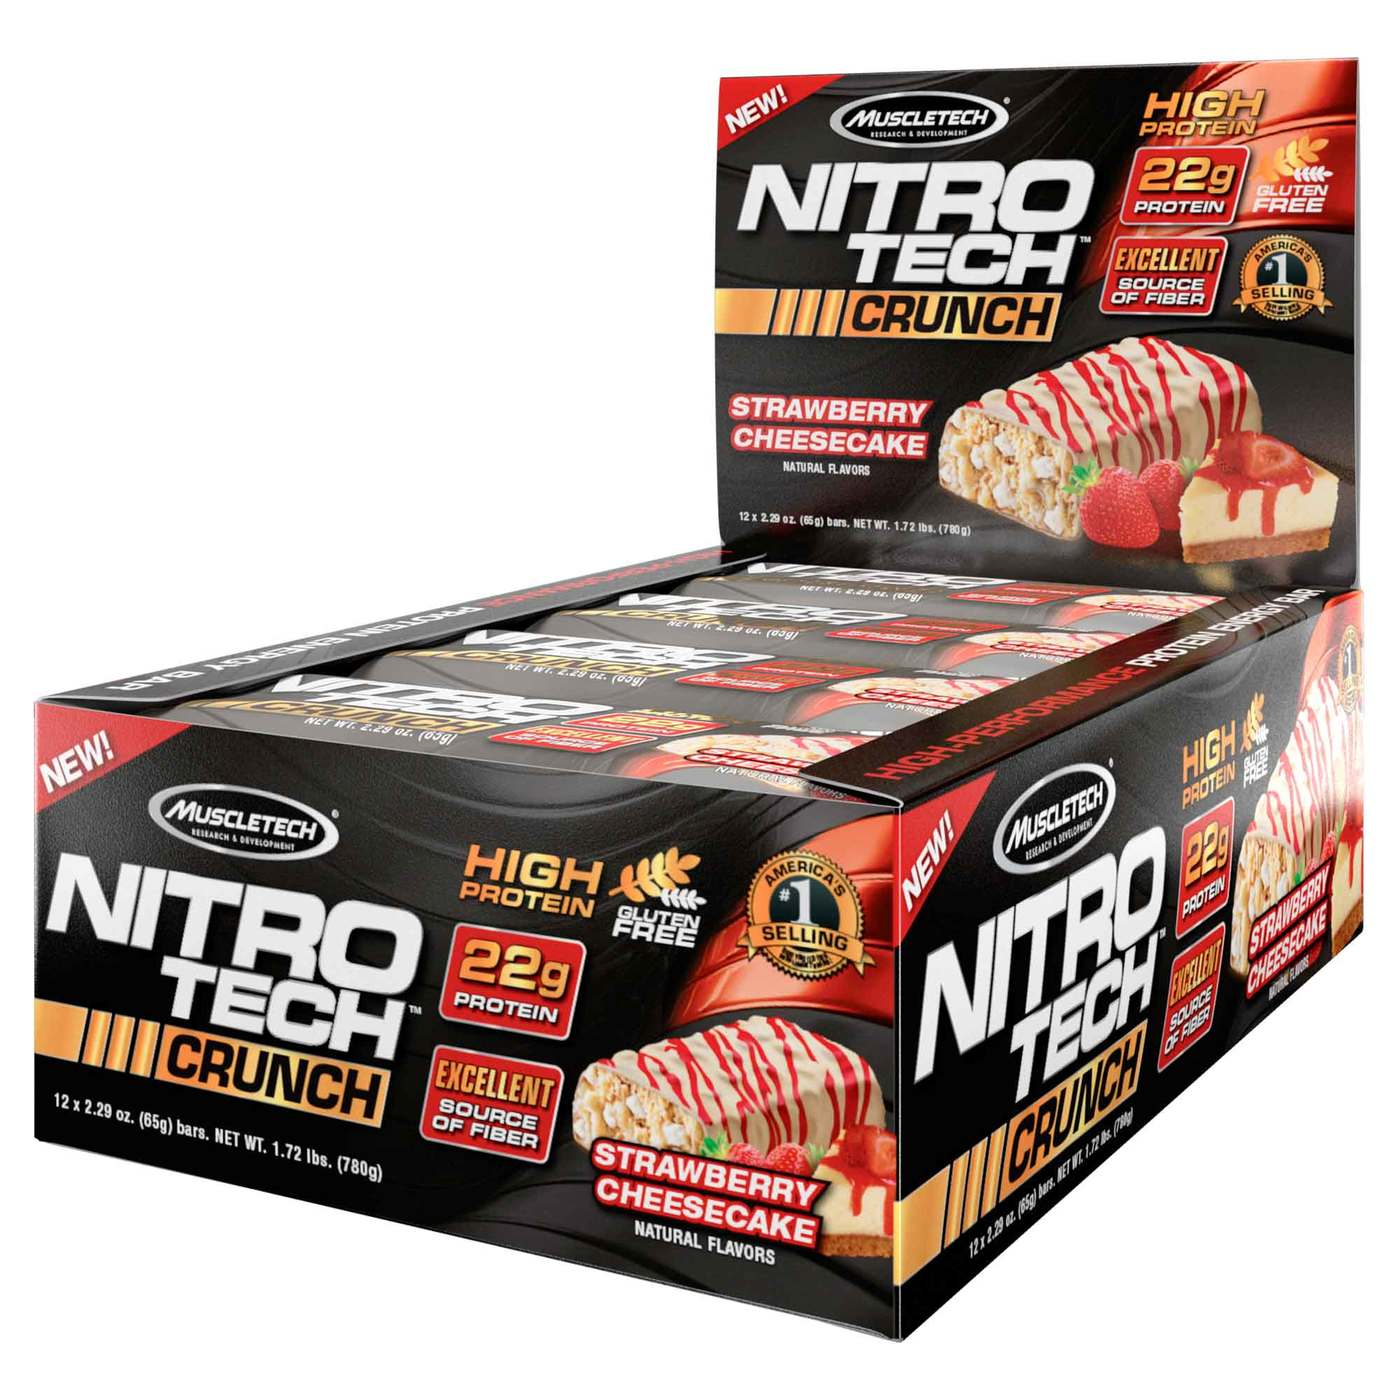 Muscletech Nitro Tech Crunch Strawberry Cheesecake 12 Pack Nitrotech 4 Lbs Hover To Zoom